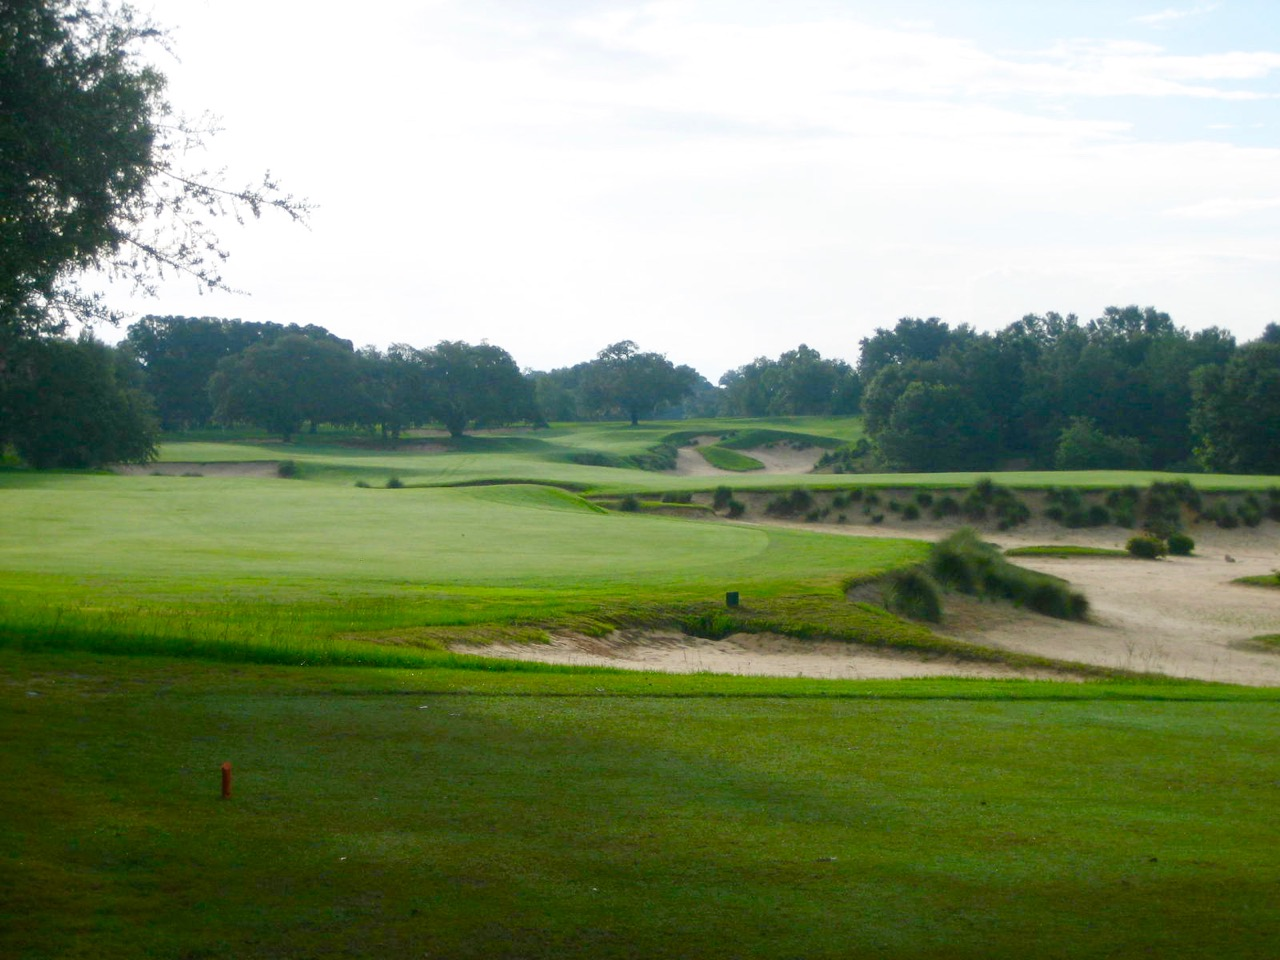 Things get real at Pine Barren's par-5 4th with a safe-option drive to a big left fairway or a high risk play over the sand cavern to a short fairway on the right.